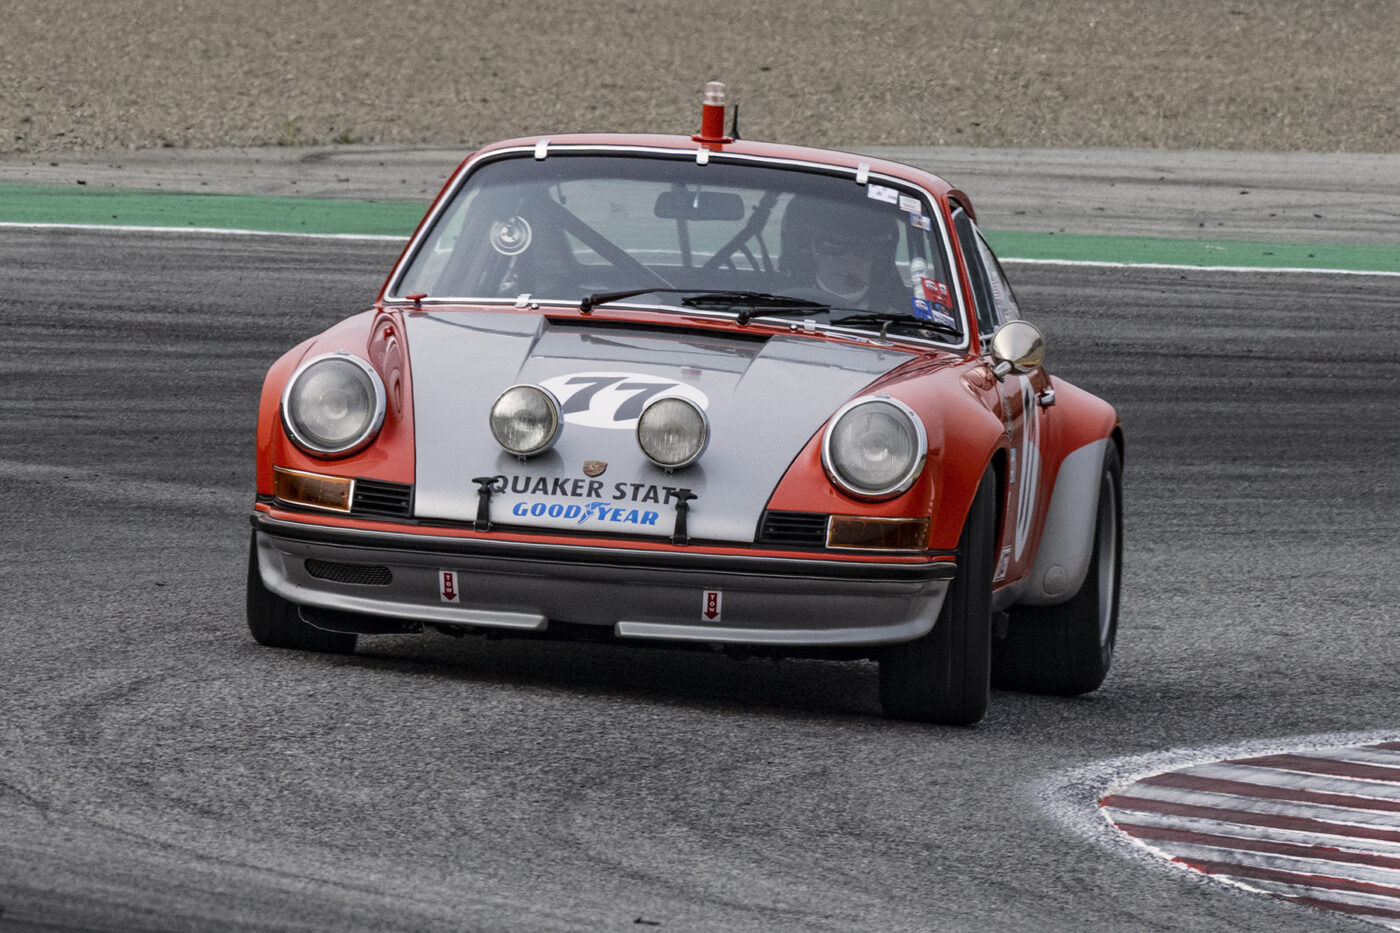 Randall Smalley's 1969 Porsche 911S 2500 in turn two Sunday. ©2021 Dennis Gray